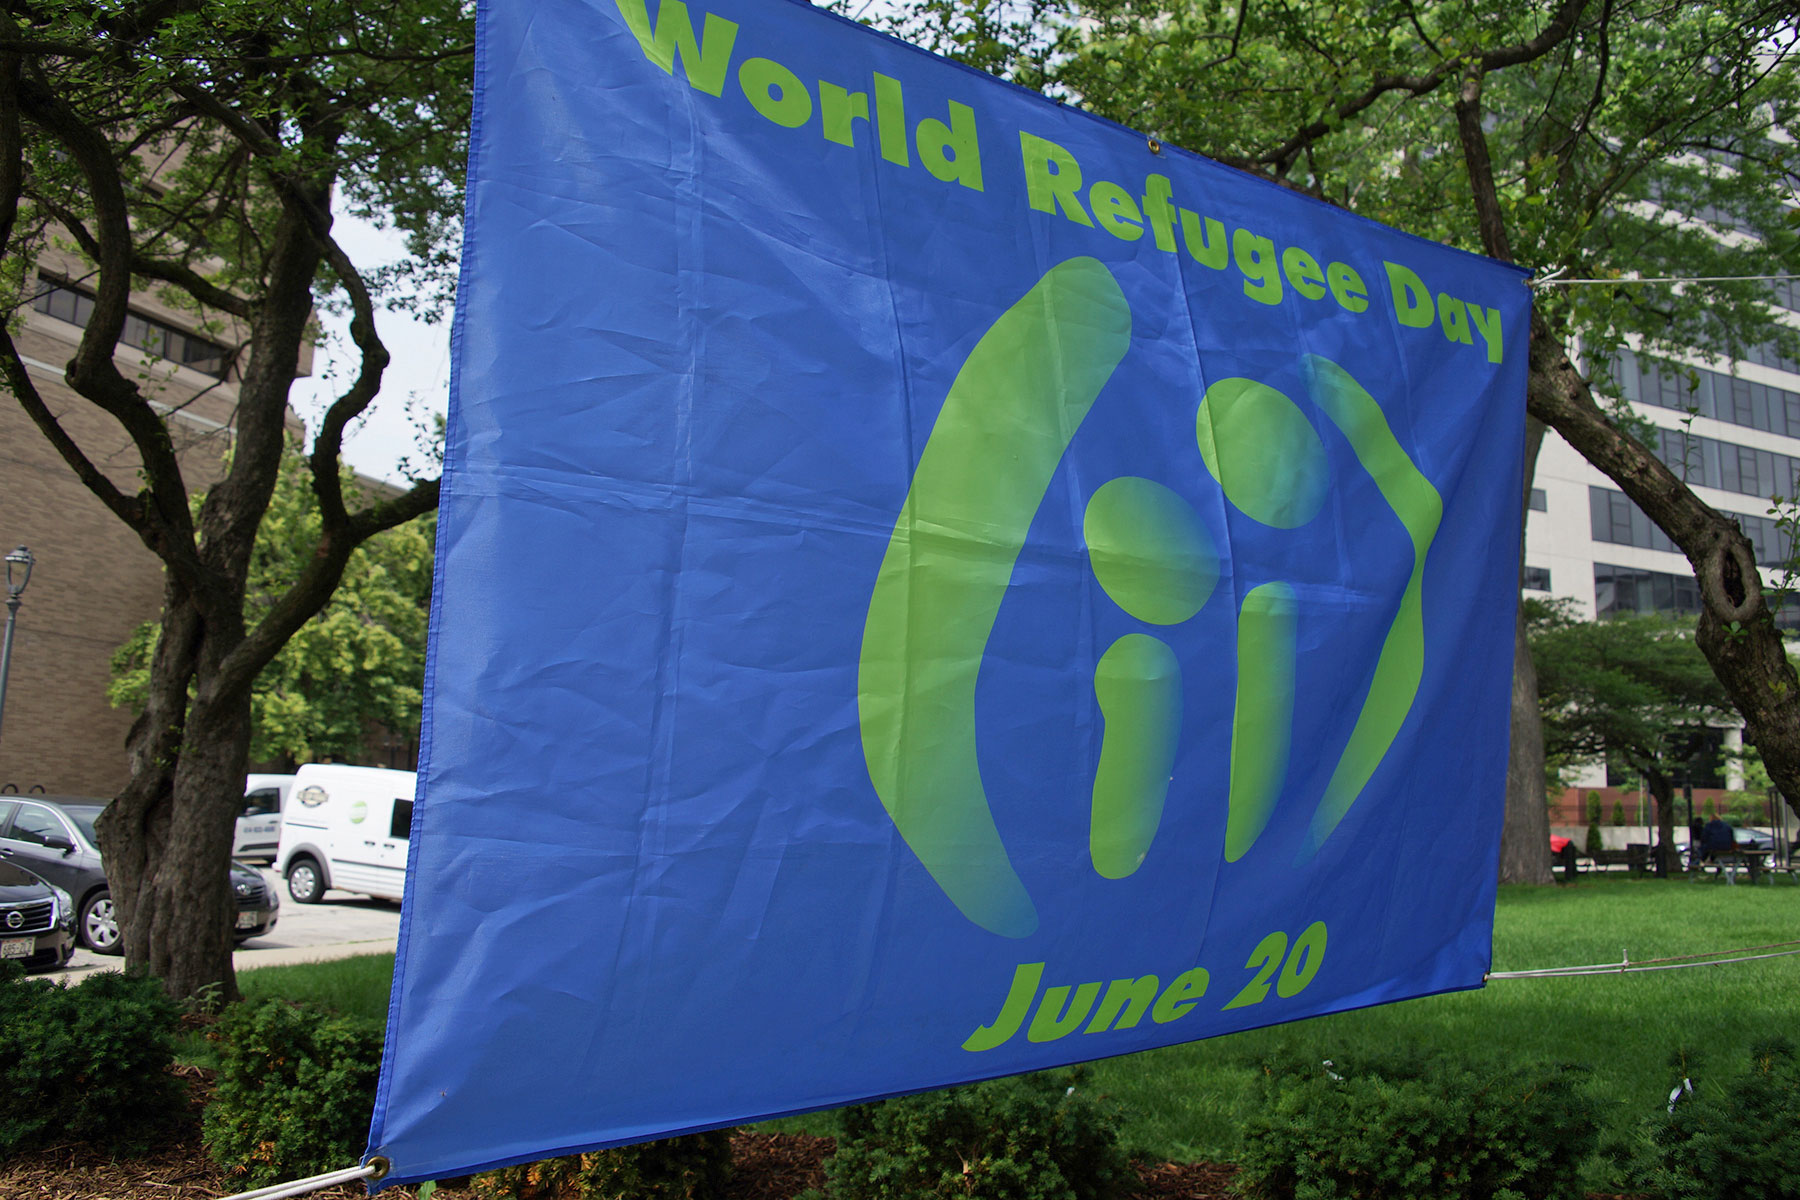 x062018_worldrefugeeday_0175